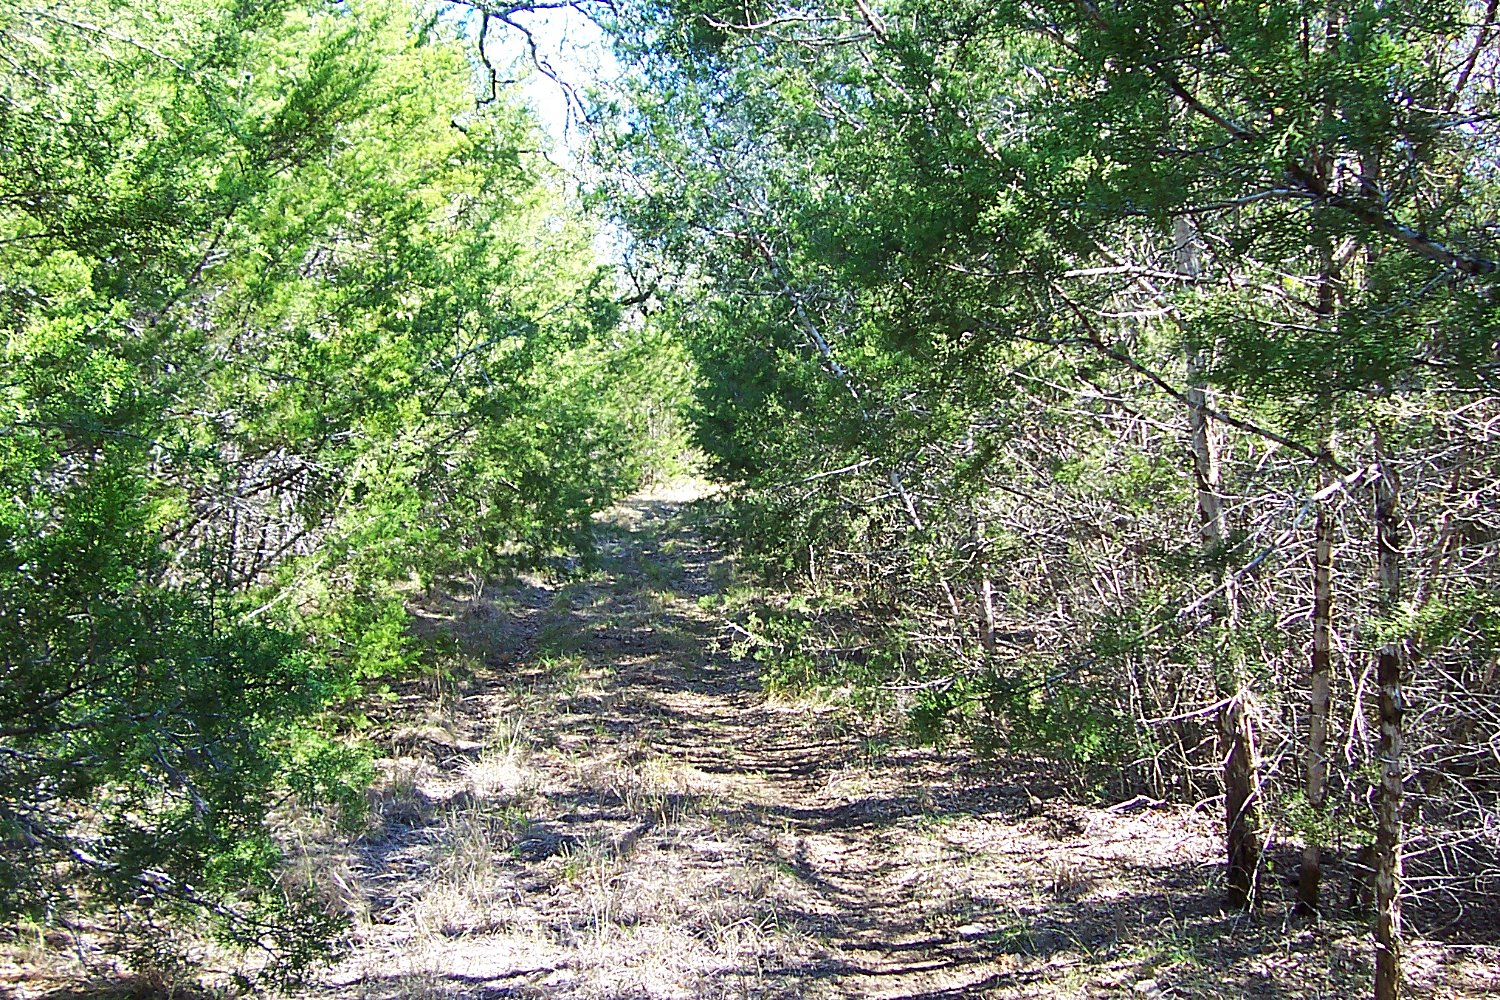 A path through the trees